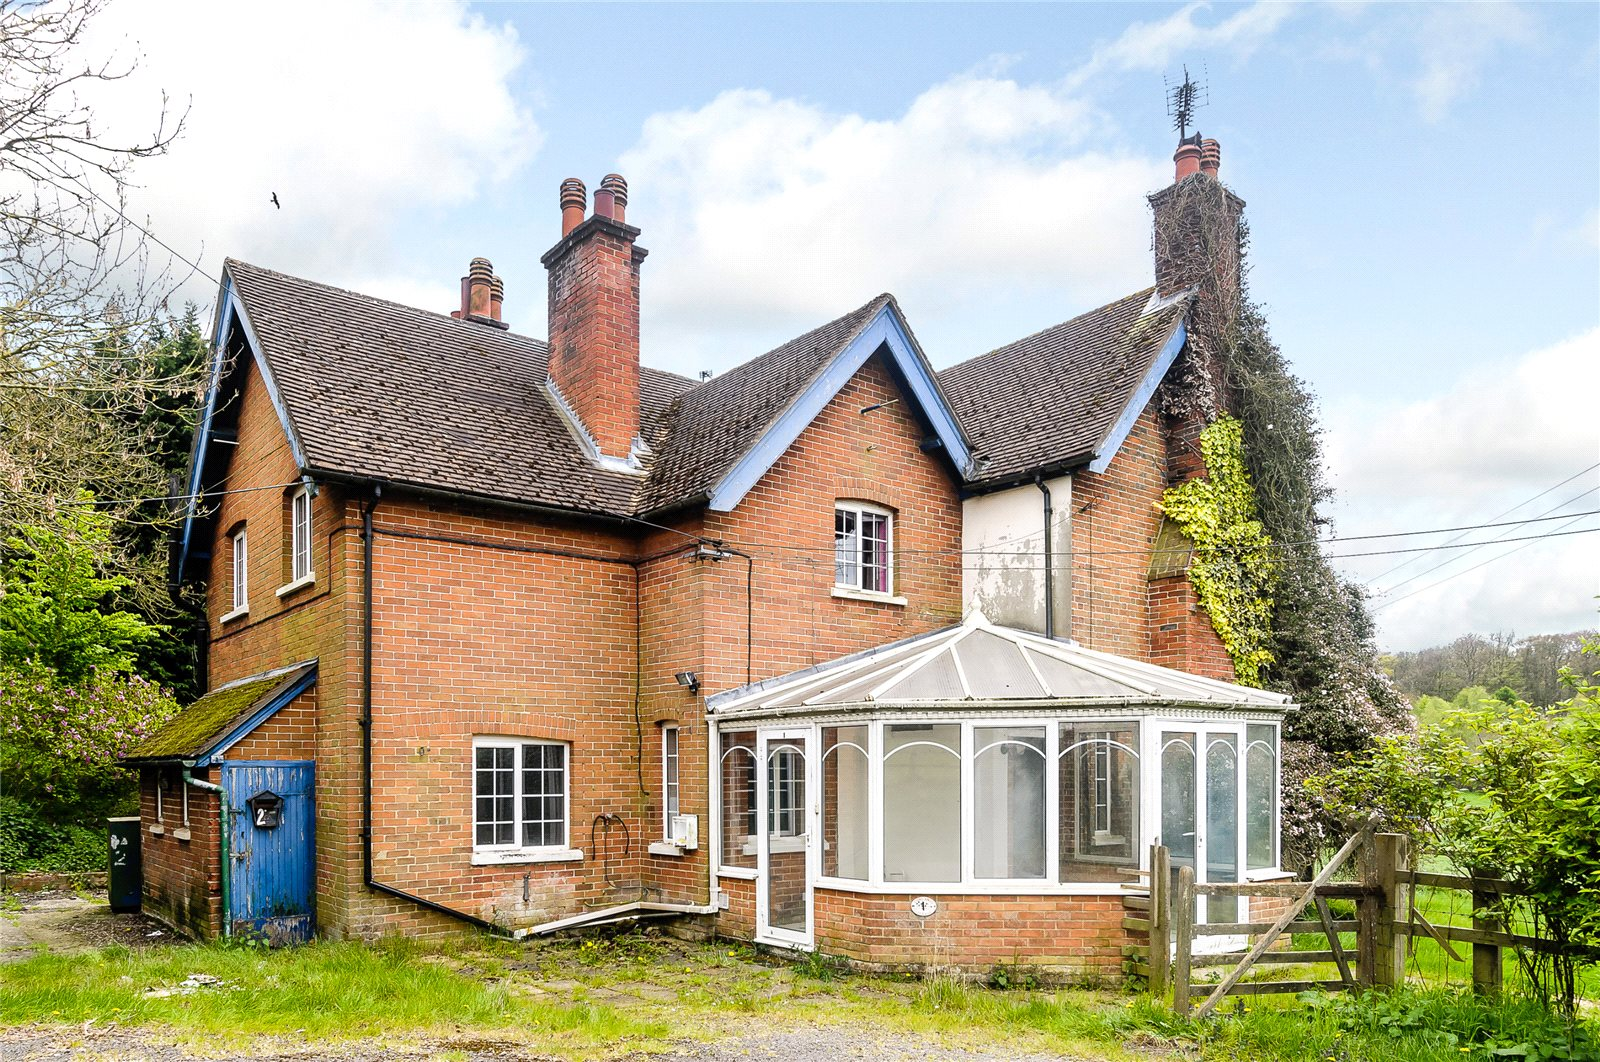 獨棟家庭住宅 為 出售 在 1 & 2 Coxlands Cottages, Burnt Hill Road, Stanford Dingley, Reading, RG7 Reading, 英格蘭